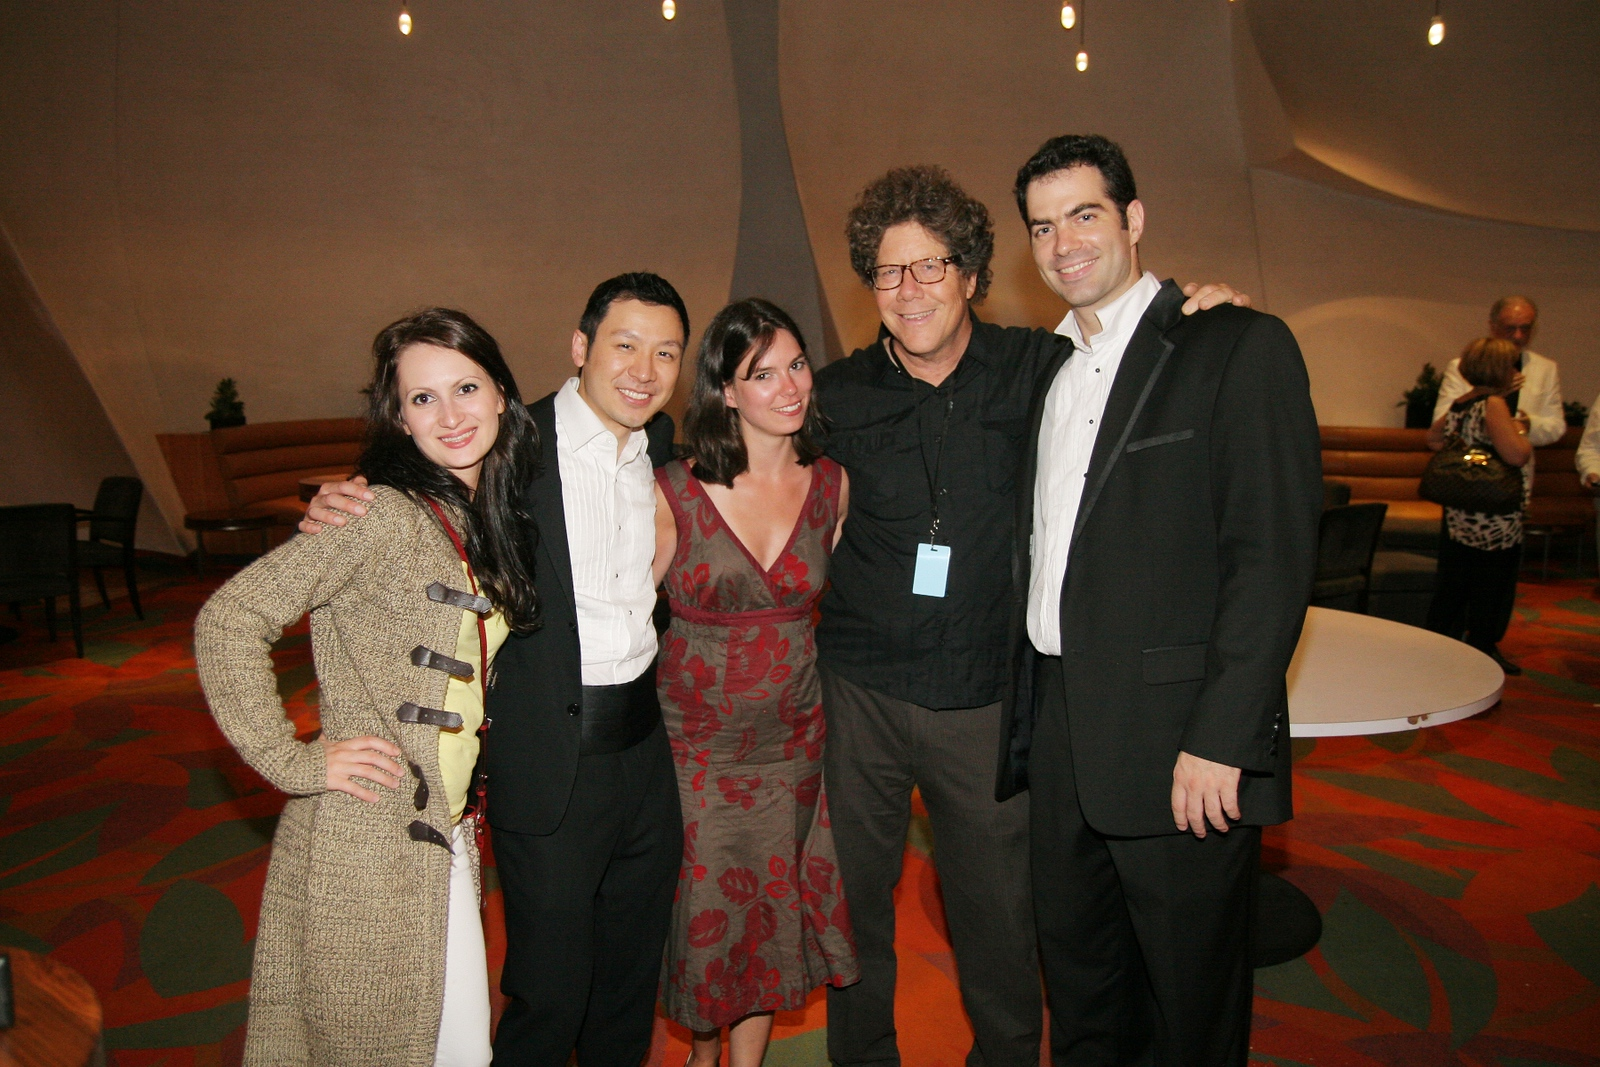 iPalpiti after party at Disney Hall with Conrad and Lars and some others I don't know as well.